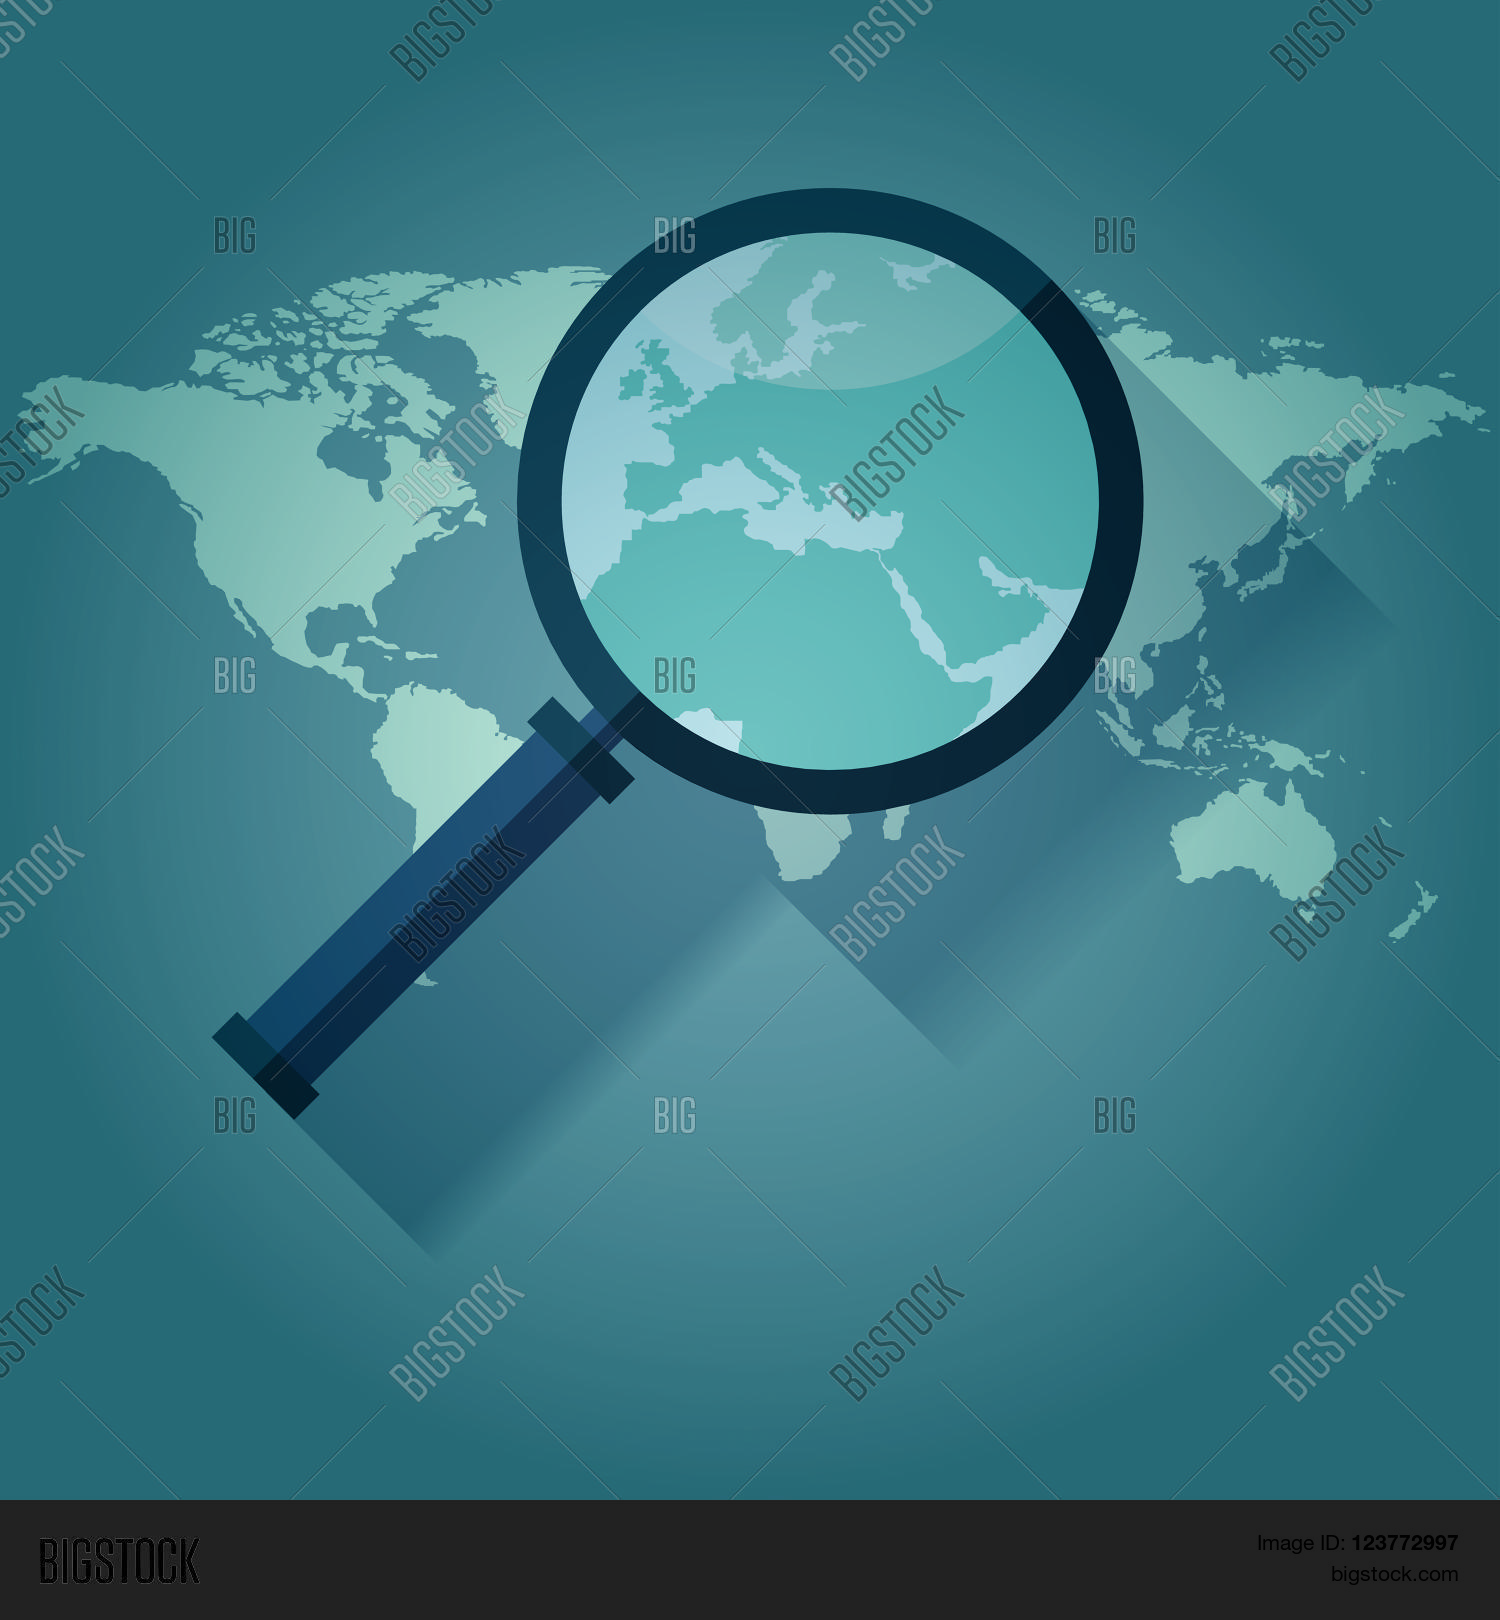 World map countries europe vector photo bigstock world map countries with europe magnifying glass gumiabroncs Gallery